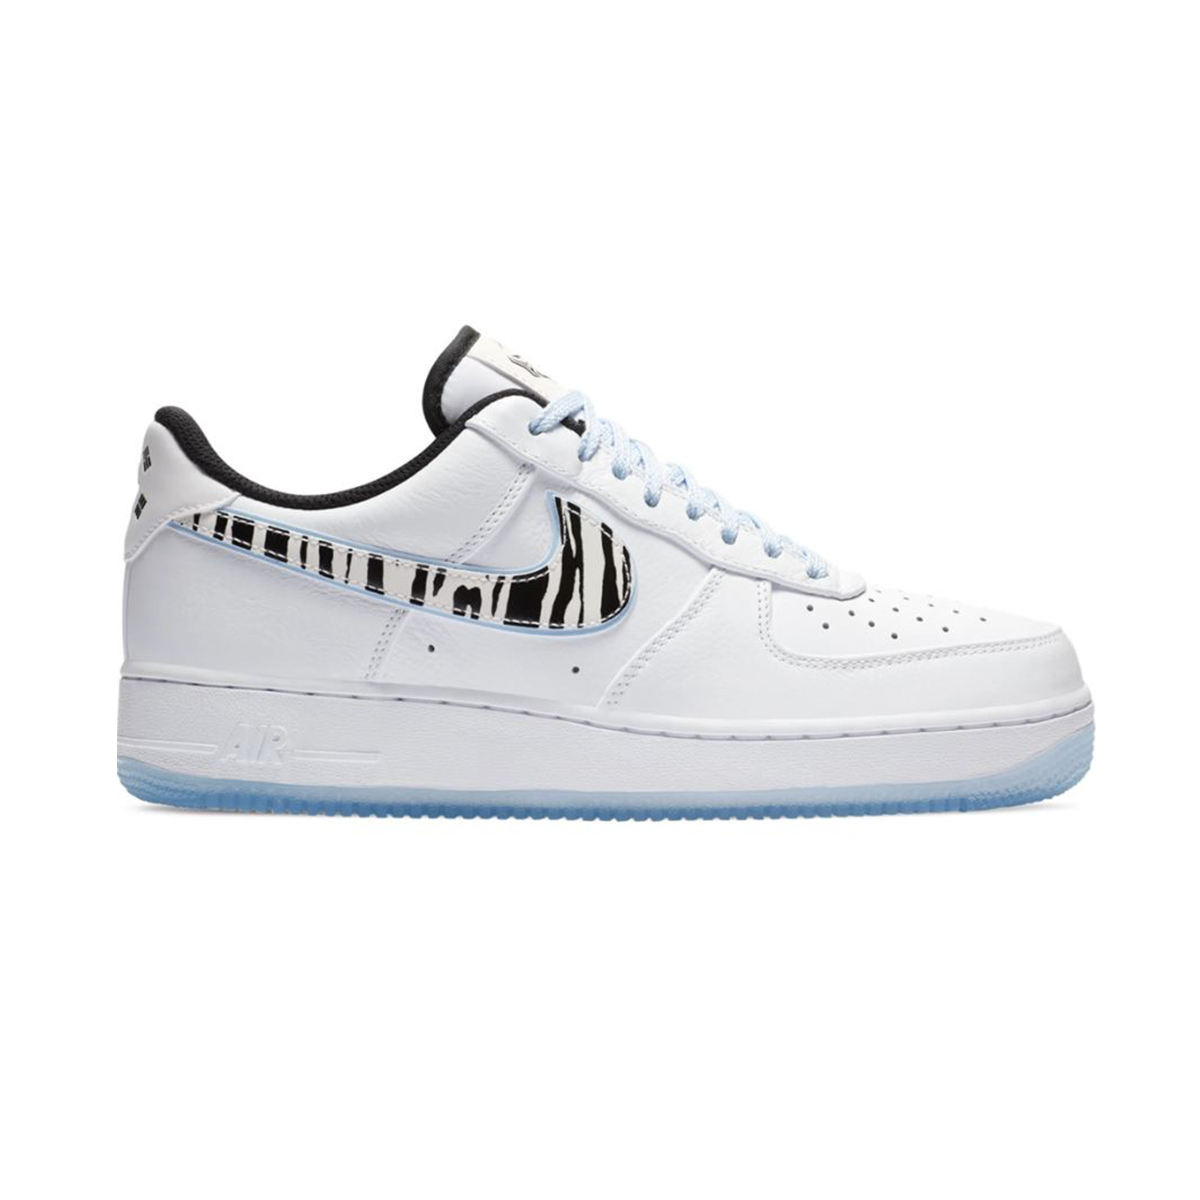 Primary image for Nike Air Force 1 '07 Low (South Korea/ White/ Blue/ Pink/ Black) Men US 8-13